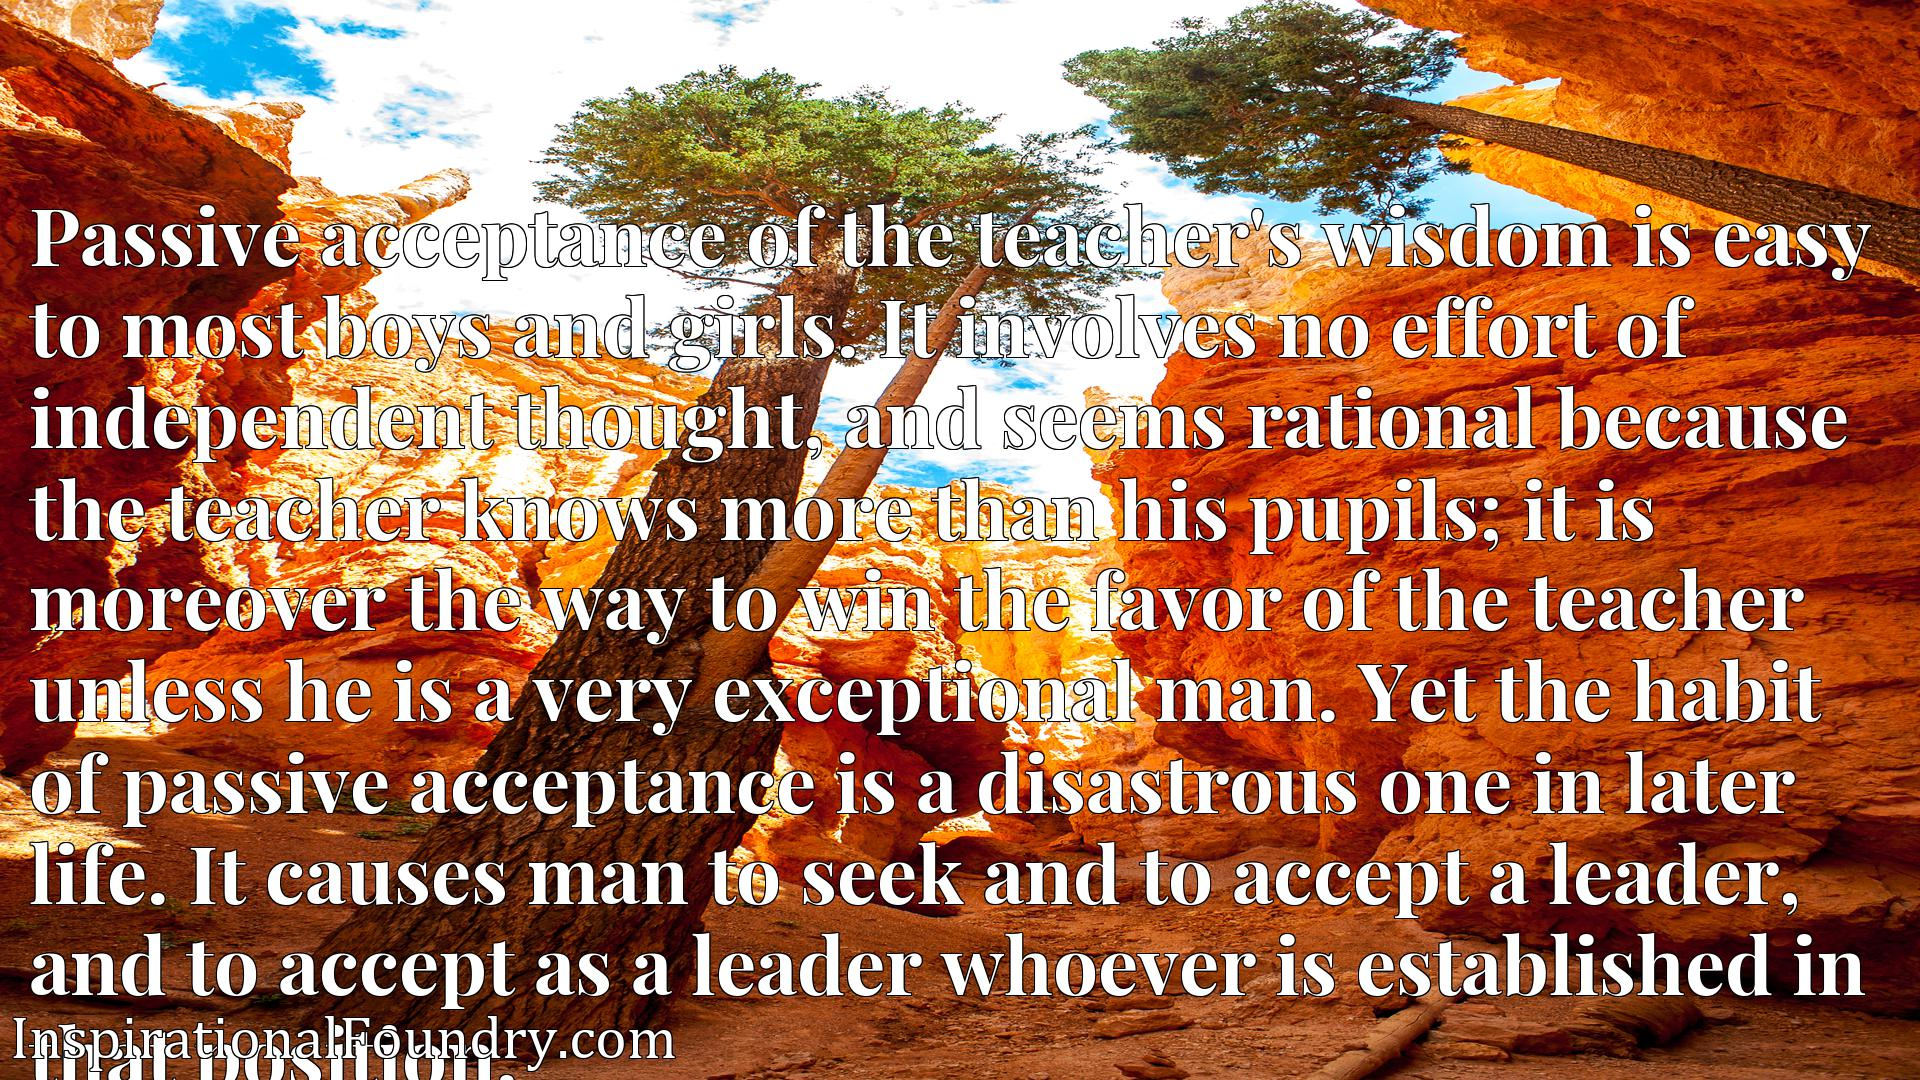 Passive acceptance of the teacher's wisdom is easy to most boys and girls. It involves no effort of independent thought, and seems rational because the teacher knows more than his pupils; it is moreover the way to win the favor of the teacher unless he is a very exceptional man. Yet the habit of passive acceptance is a disastrous one in later life. It causes man to seek and to accept a leader, and to accept as a leader whoever is established in that position.